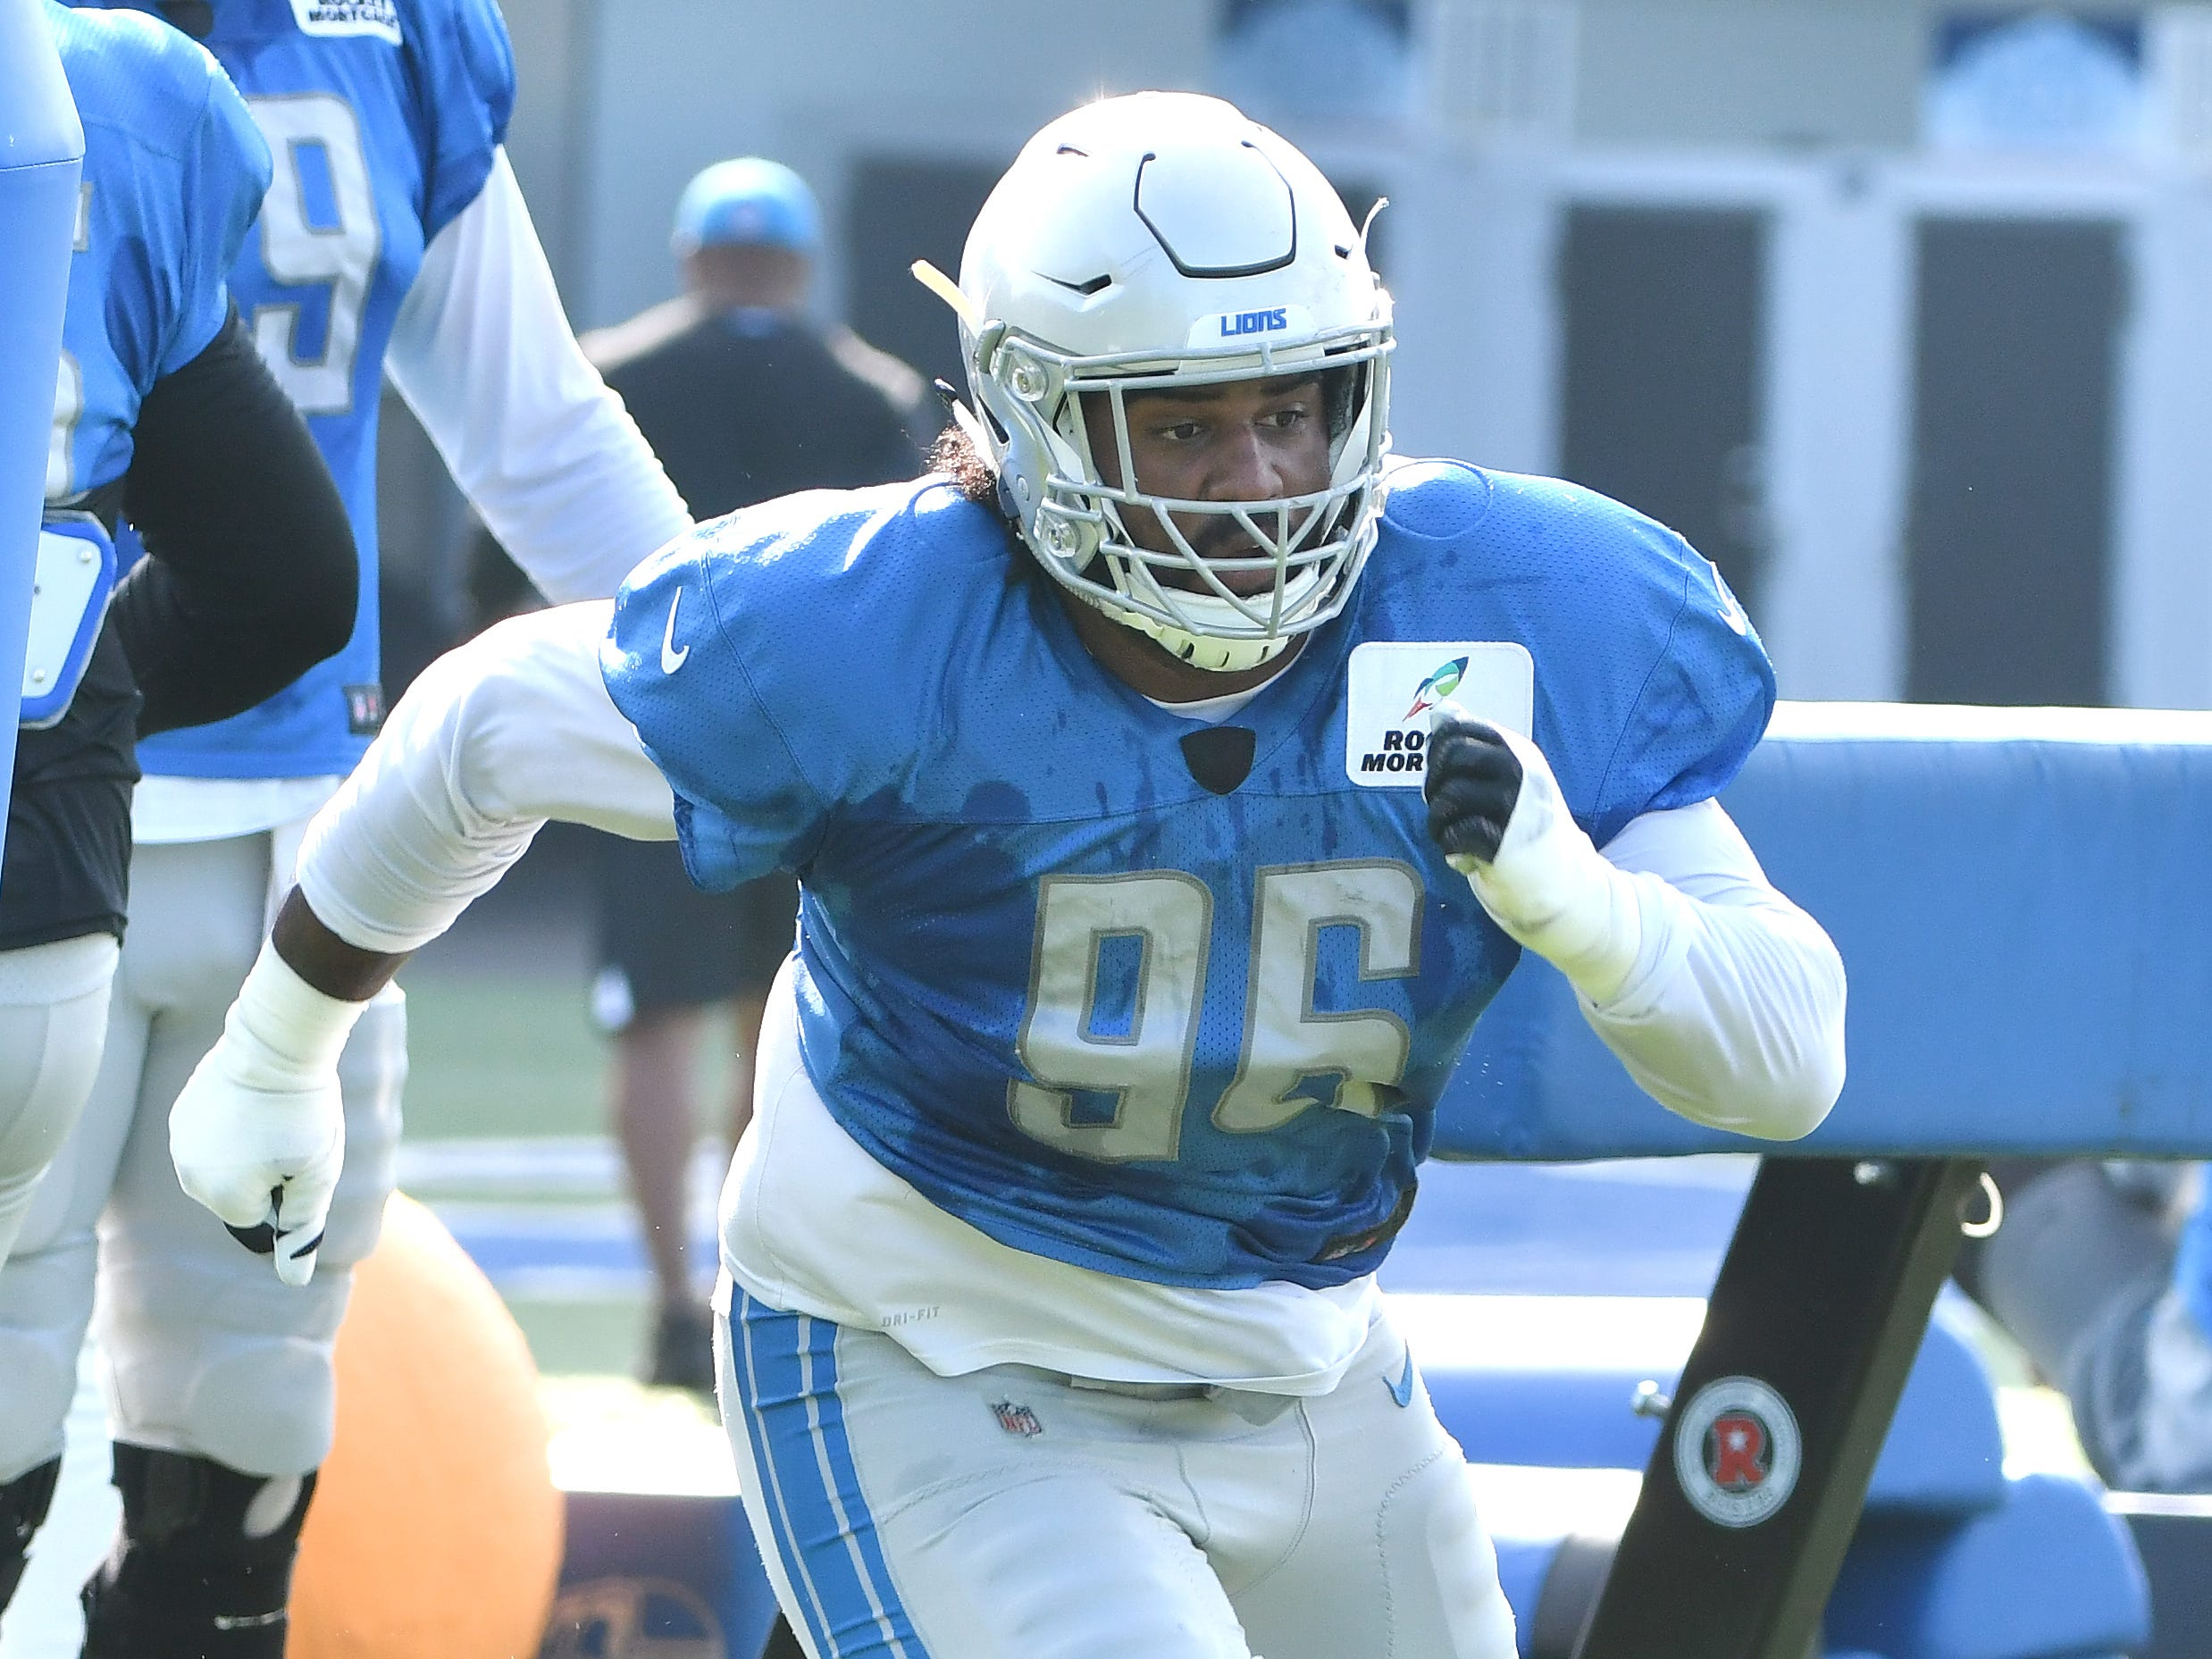 Lions defensive lineman JoJo Wicker works around the pylons.